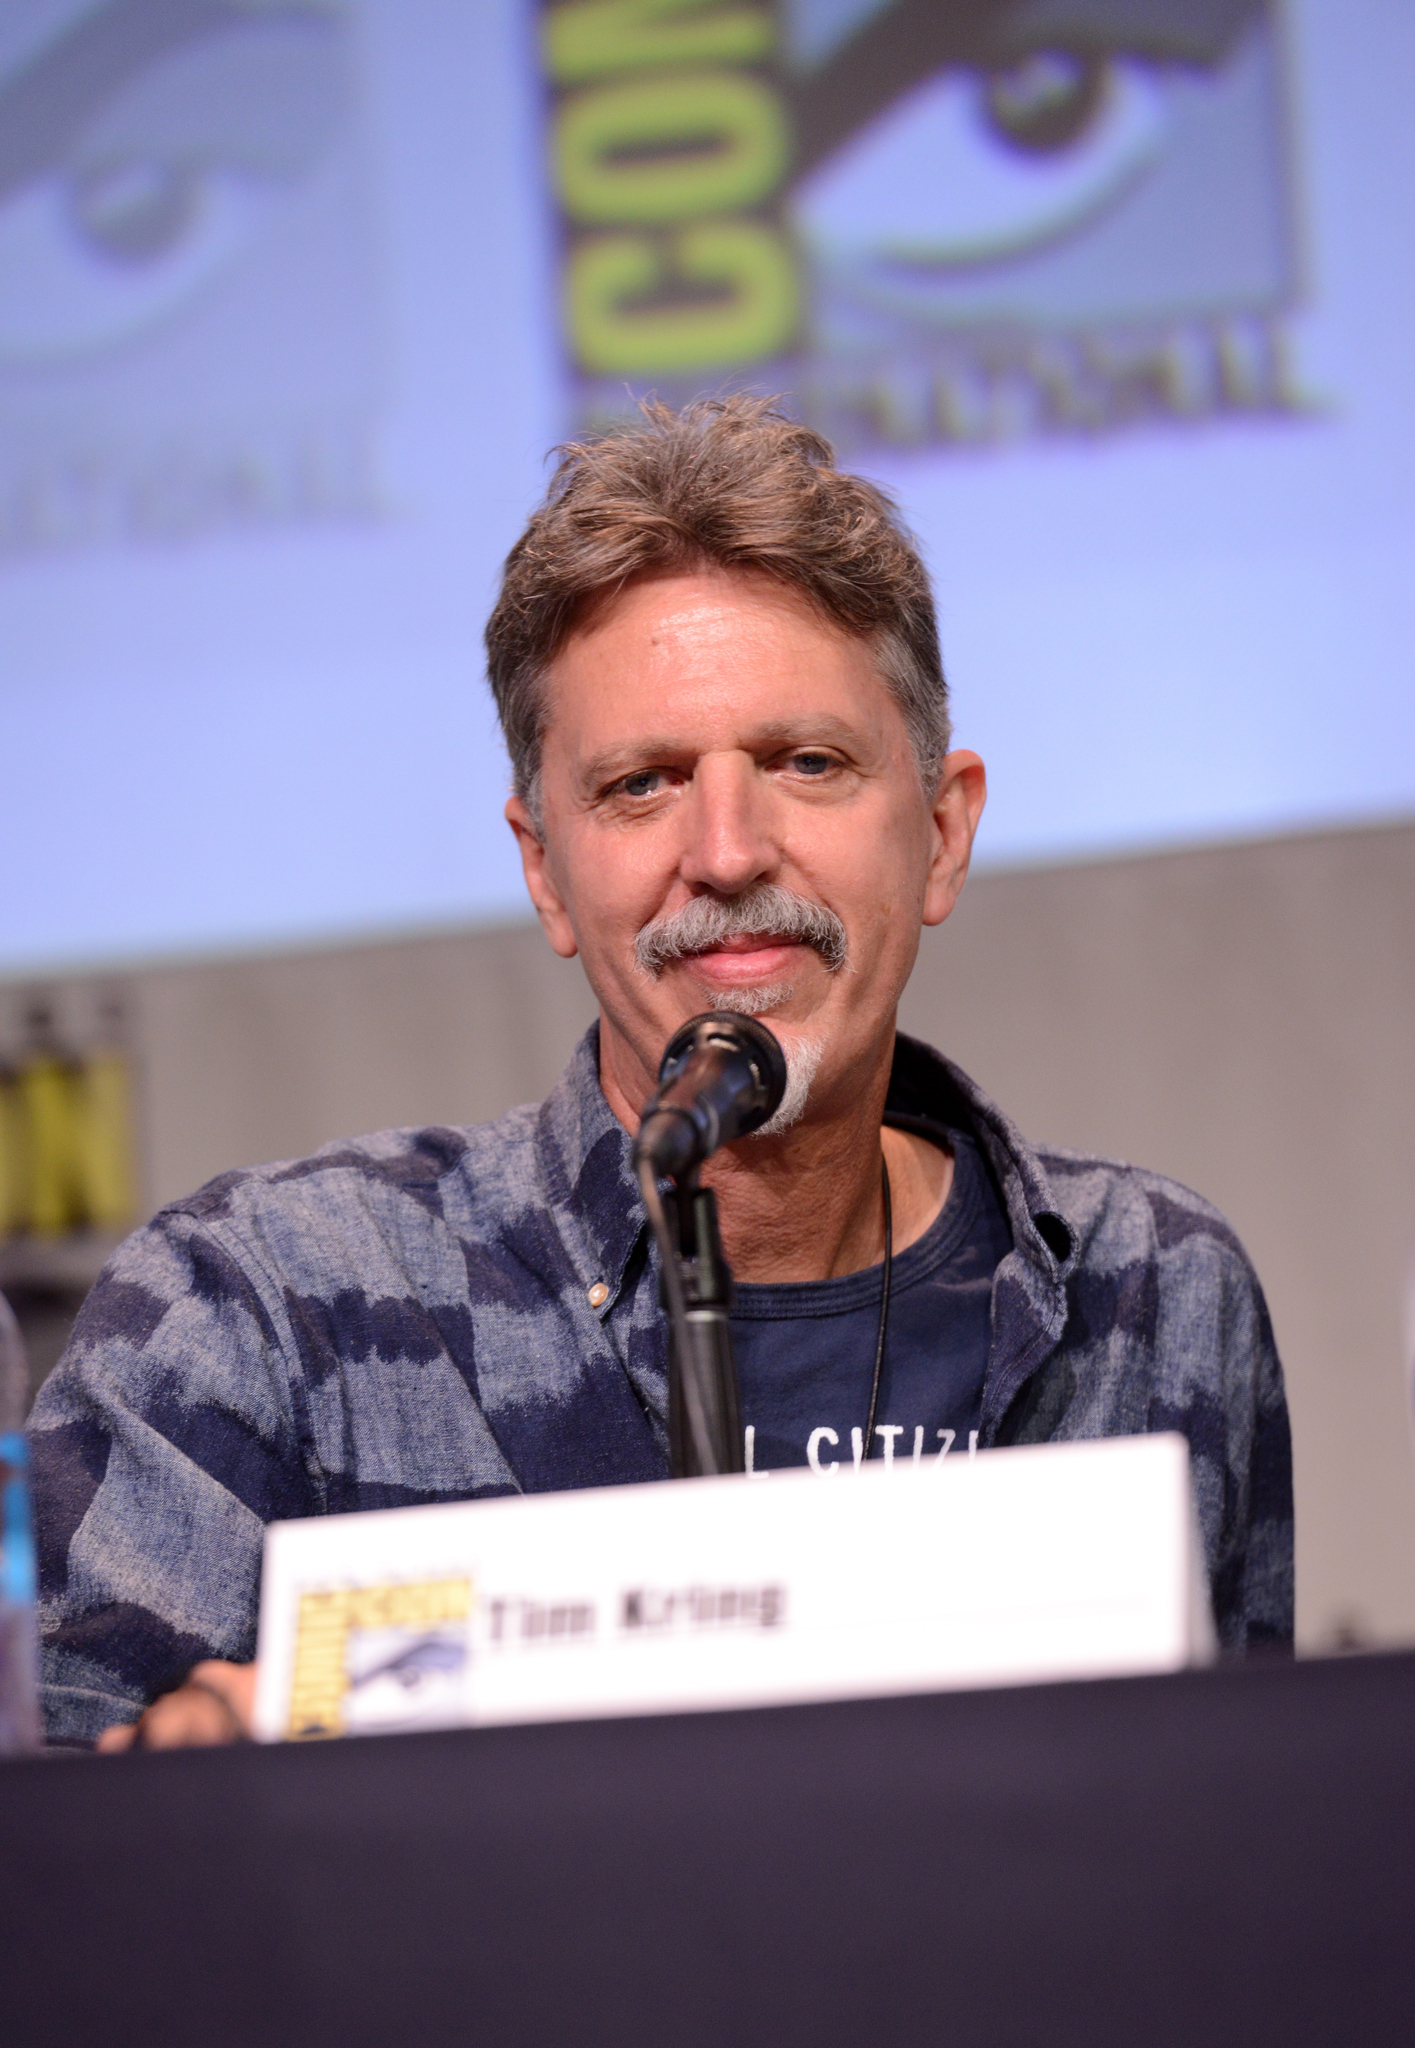 Tim Kring at an event for Heroes Reborn (2015)